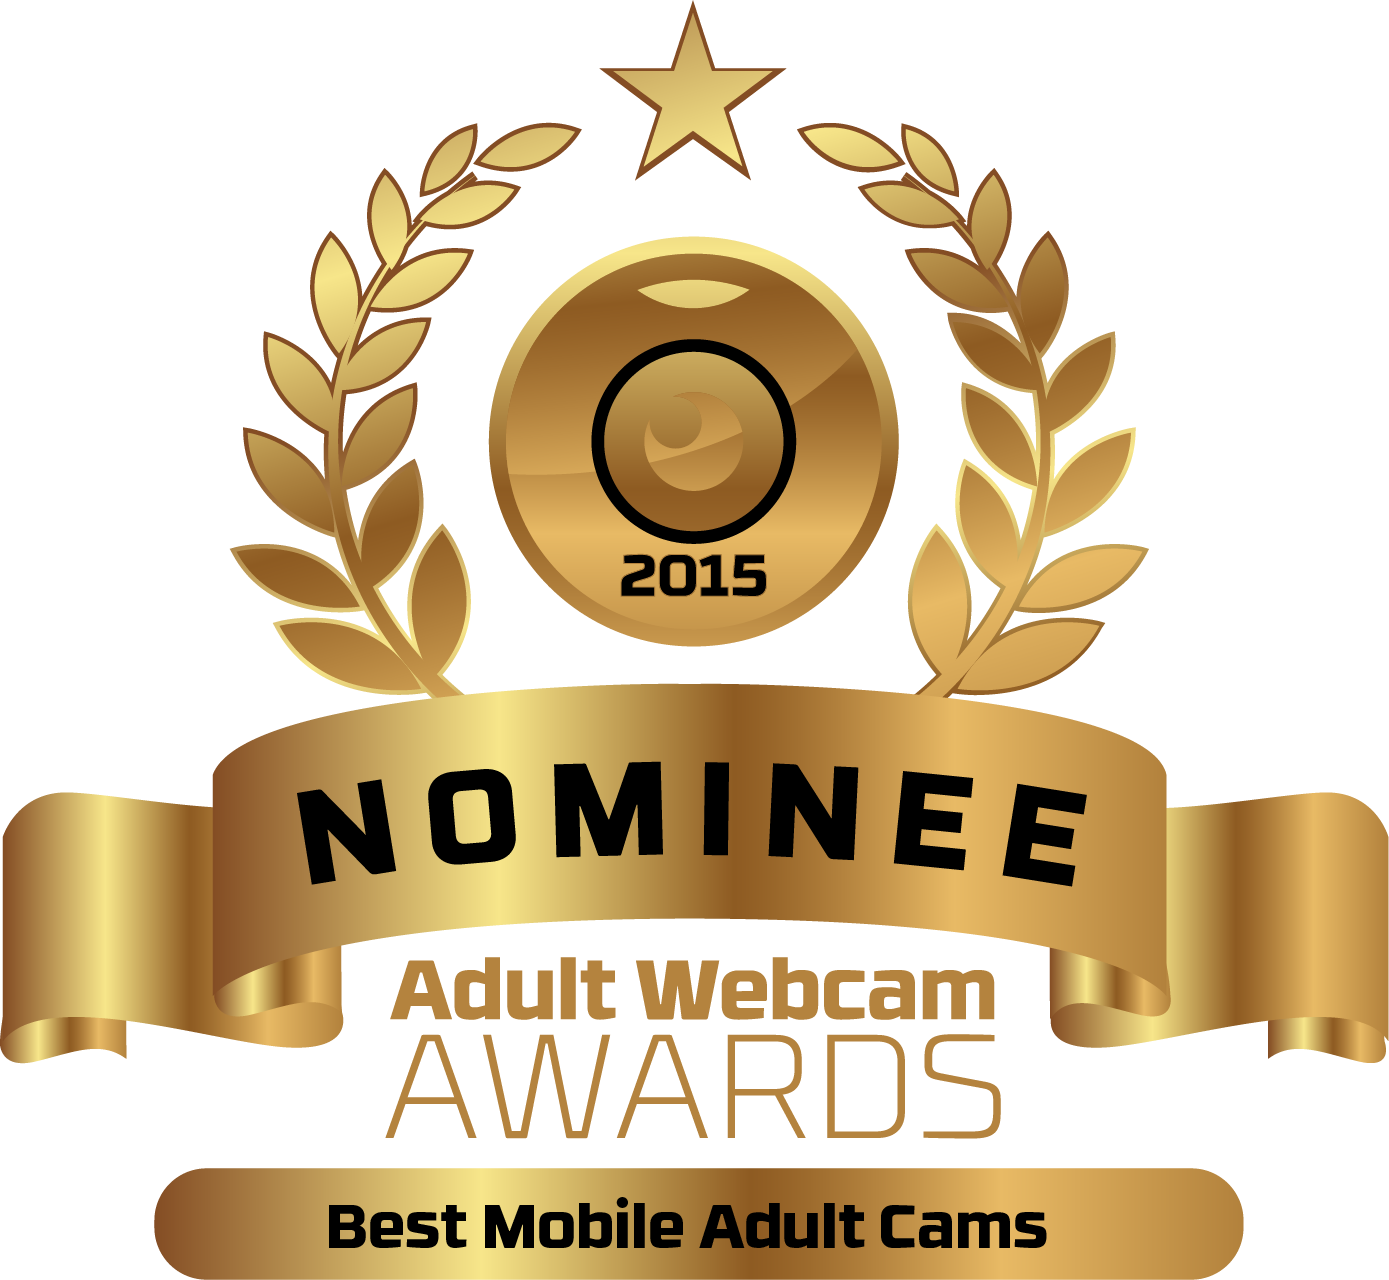 Vote for the top overall adult webcam site based on user experience.